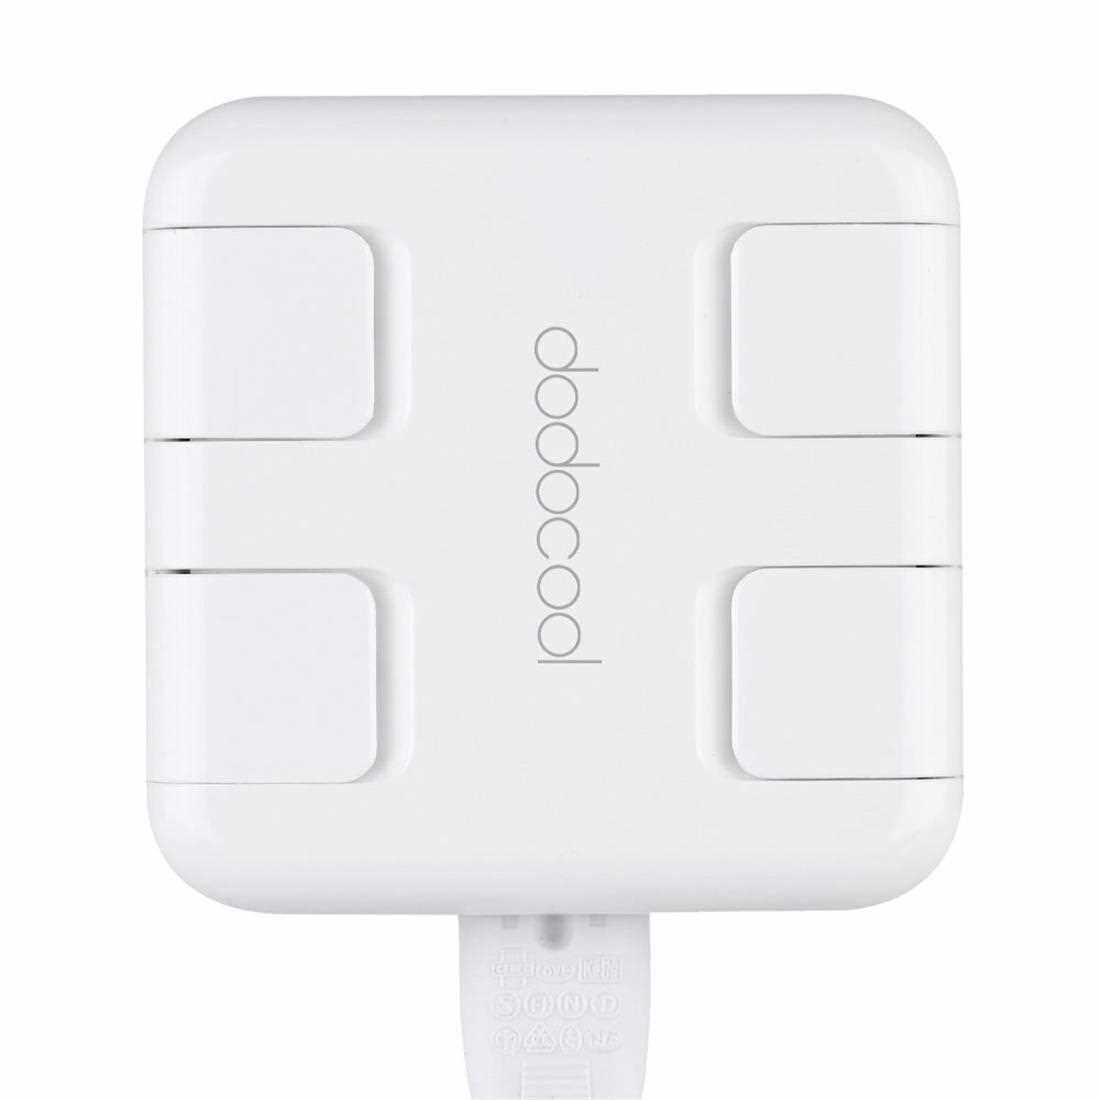 Best Selling 25W / 5.4A 4 Ports Universal USB Power Adapter with Intelligent Current Recognition for Travel Mobile Cell Phones Tablet PC Smart Fast Charger (White)